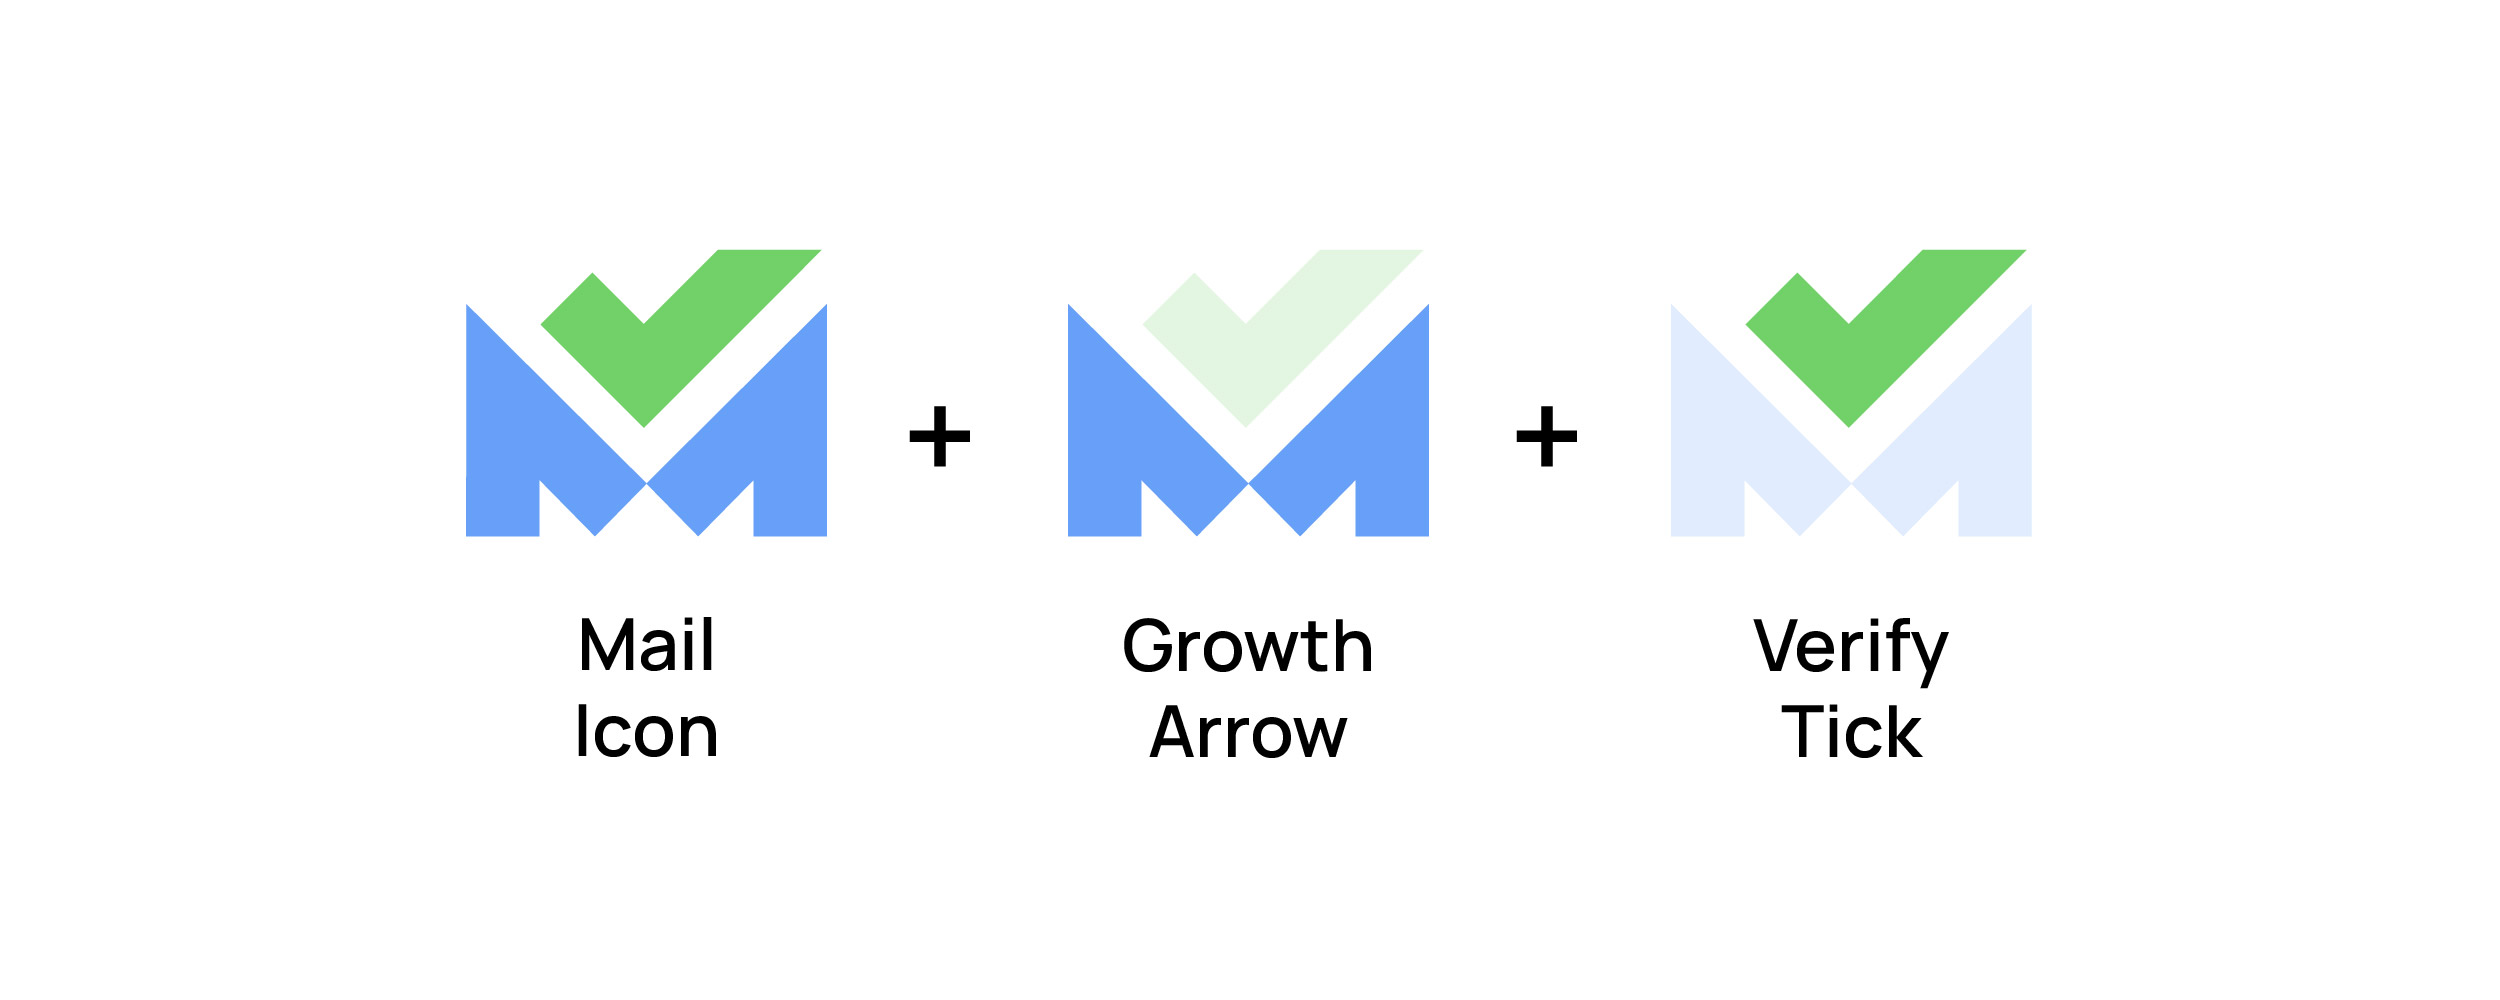 A logo breakdown showing the thought process behind the logo of Salesblink.